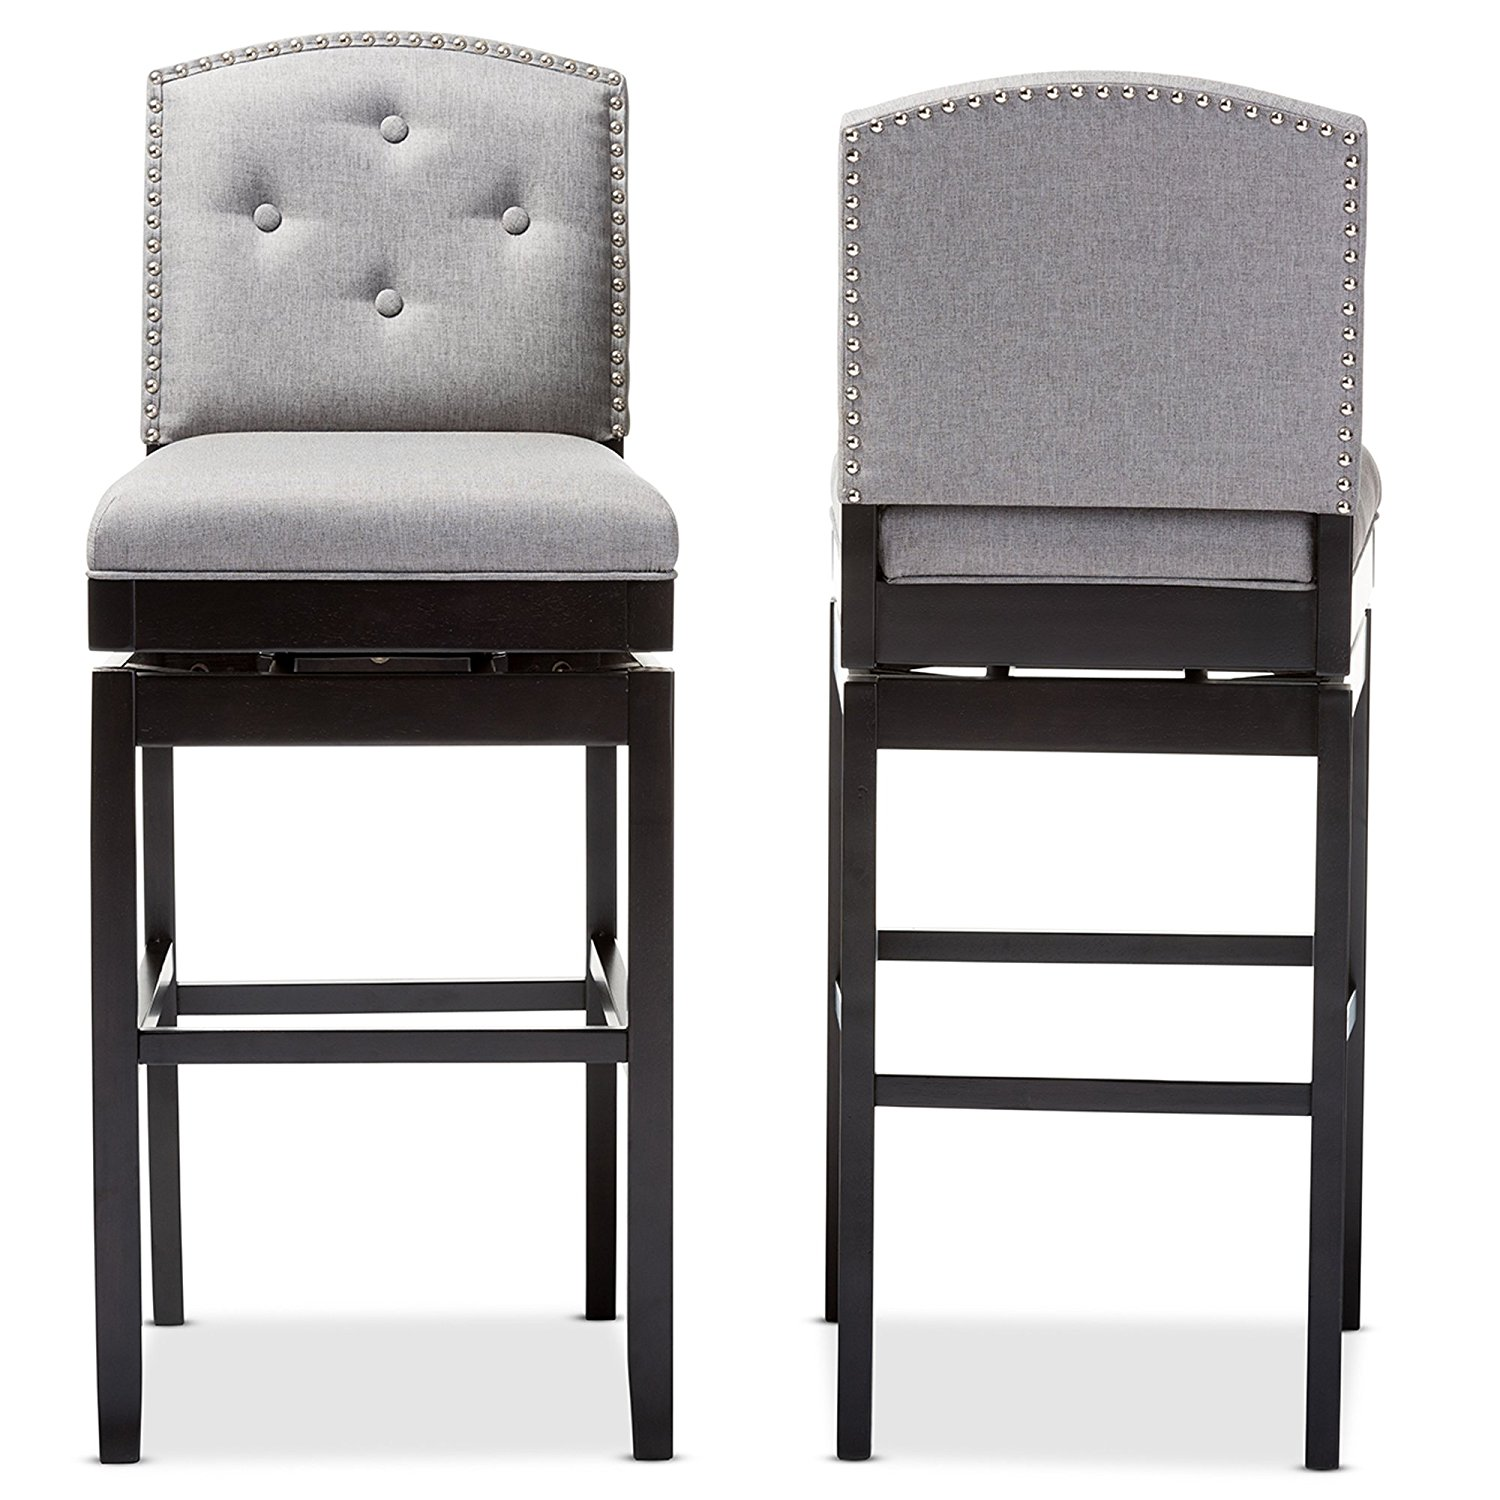 Surprising Details About Baxton Studio Ginaro Set Of 2 Button Tufted Upholstered Swivel Bar Stool In Grey Unemploymentrelief Wooden Chair Designs For Living Room Unemploymentrelieforg